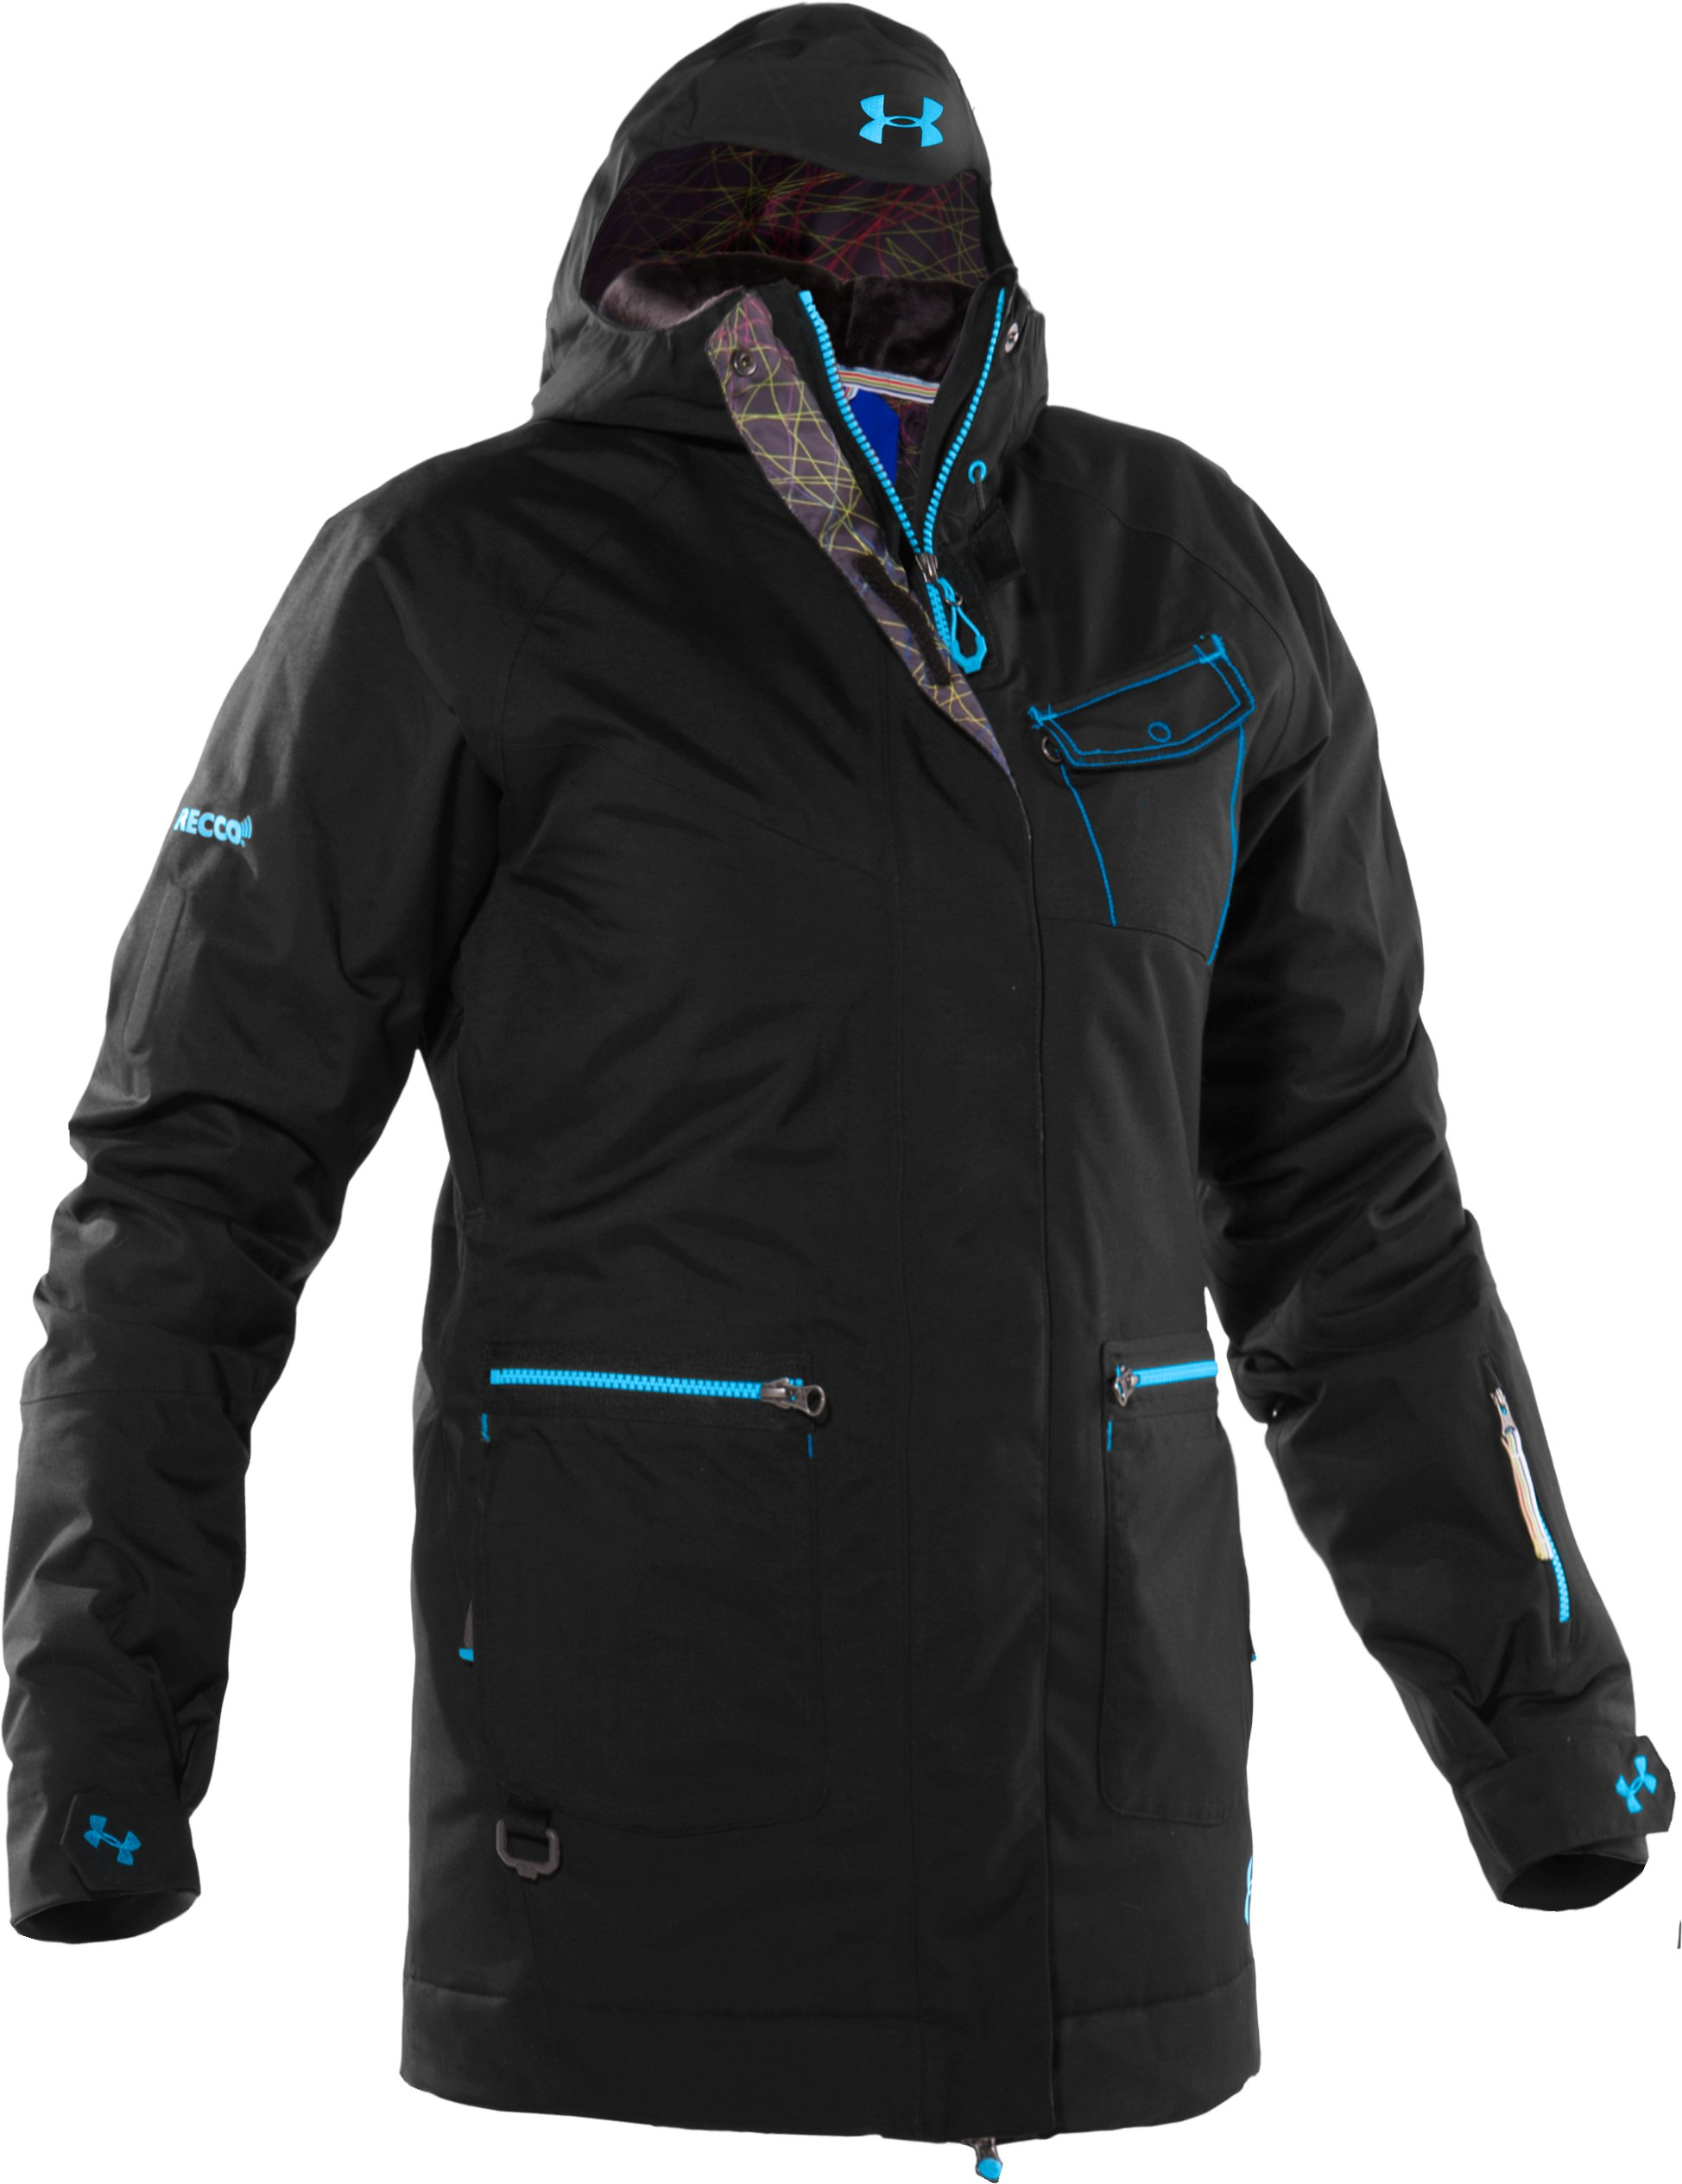 Women's Blar Waterproof Ski Jacket, Black ,